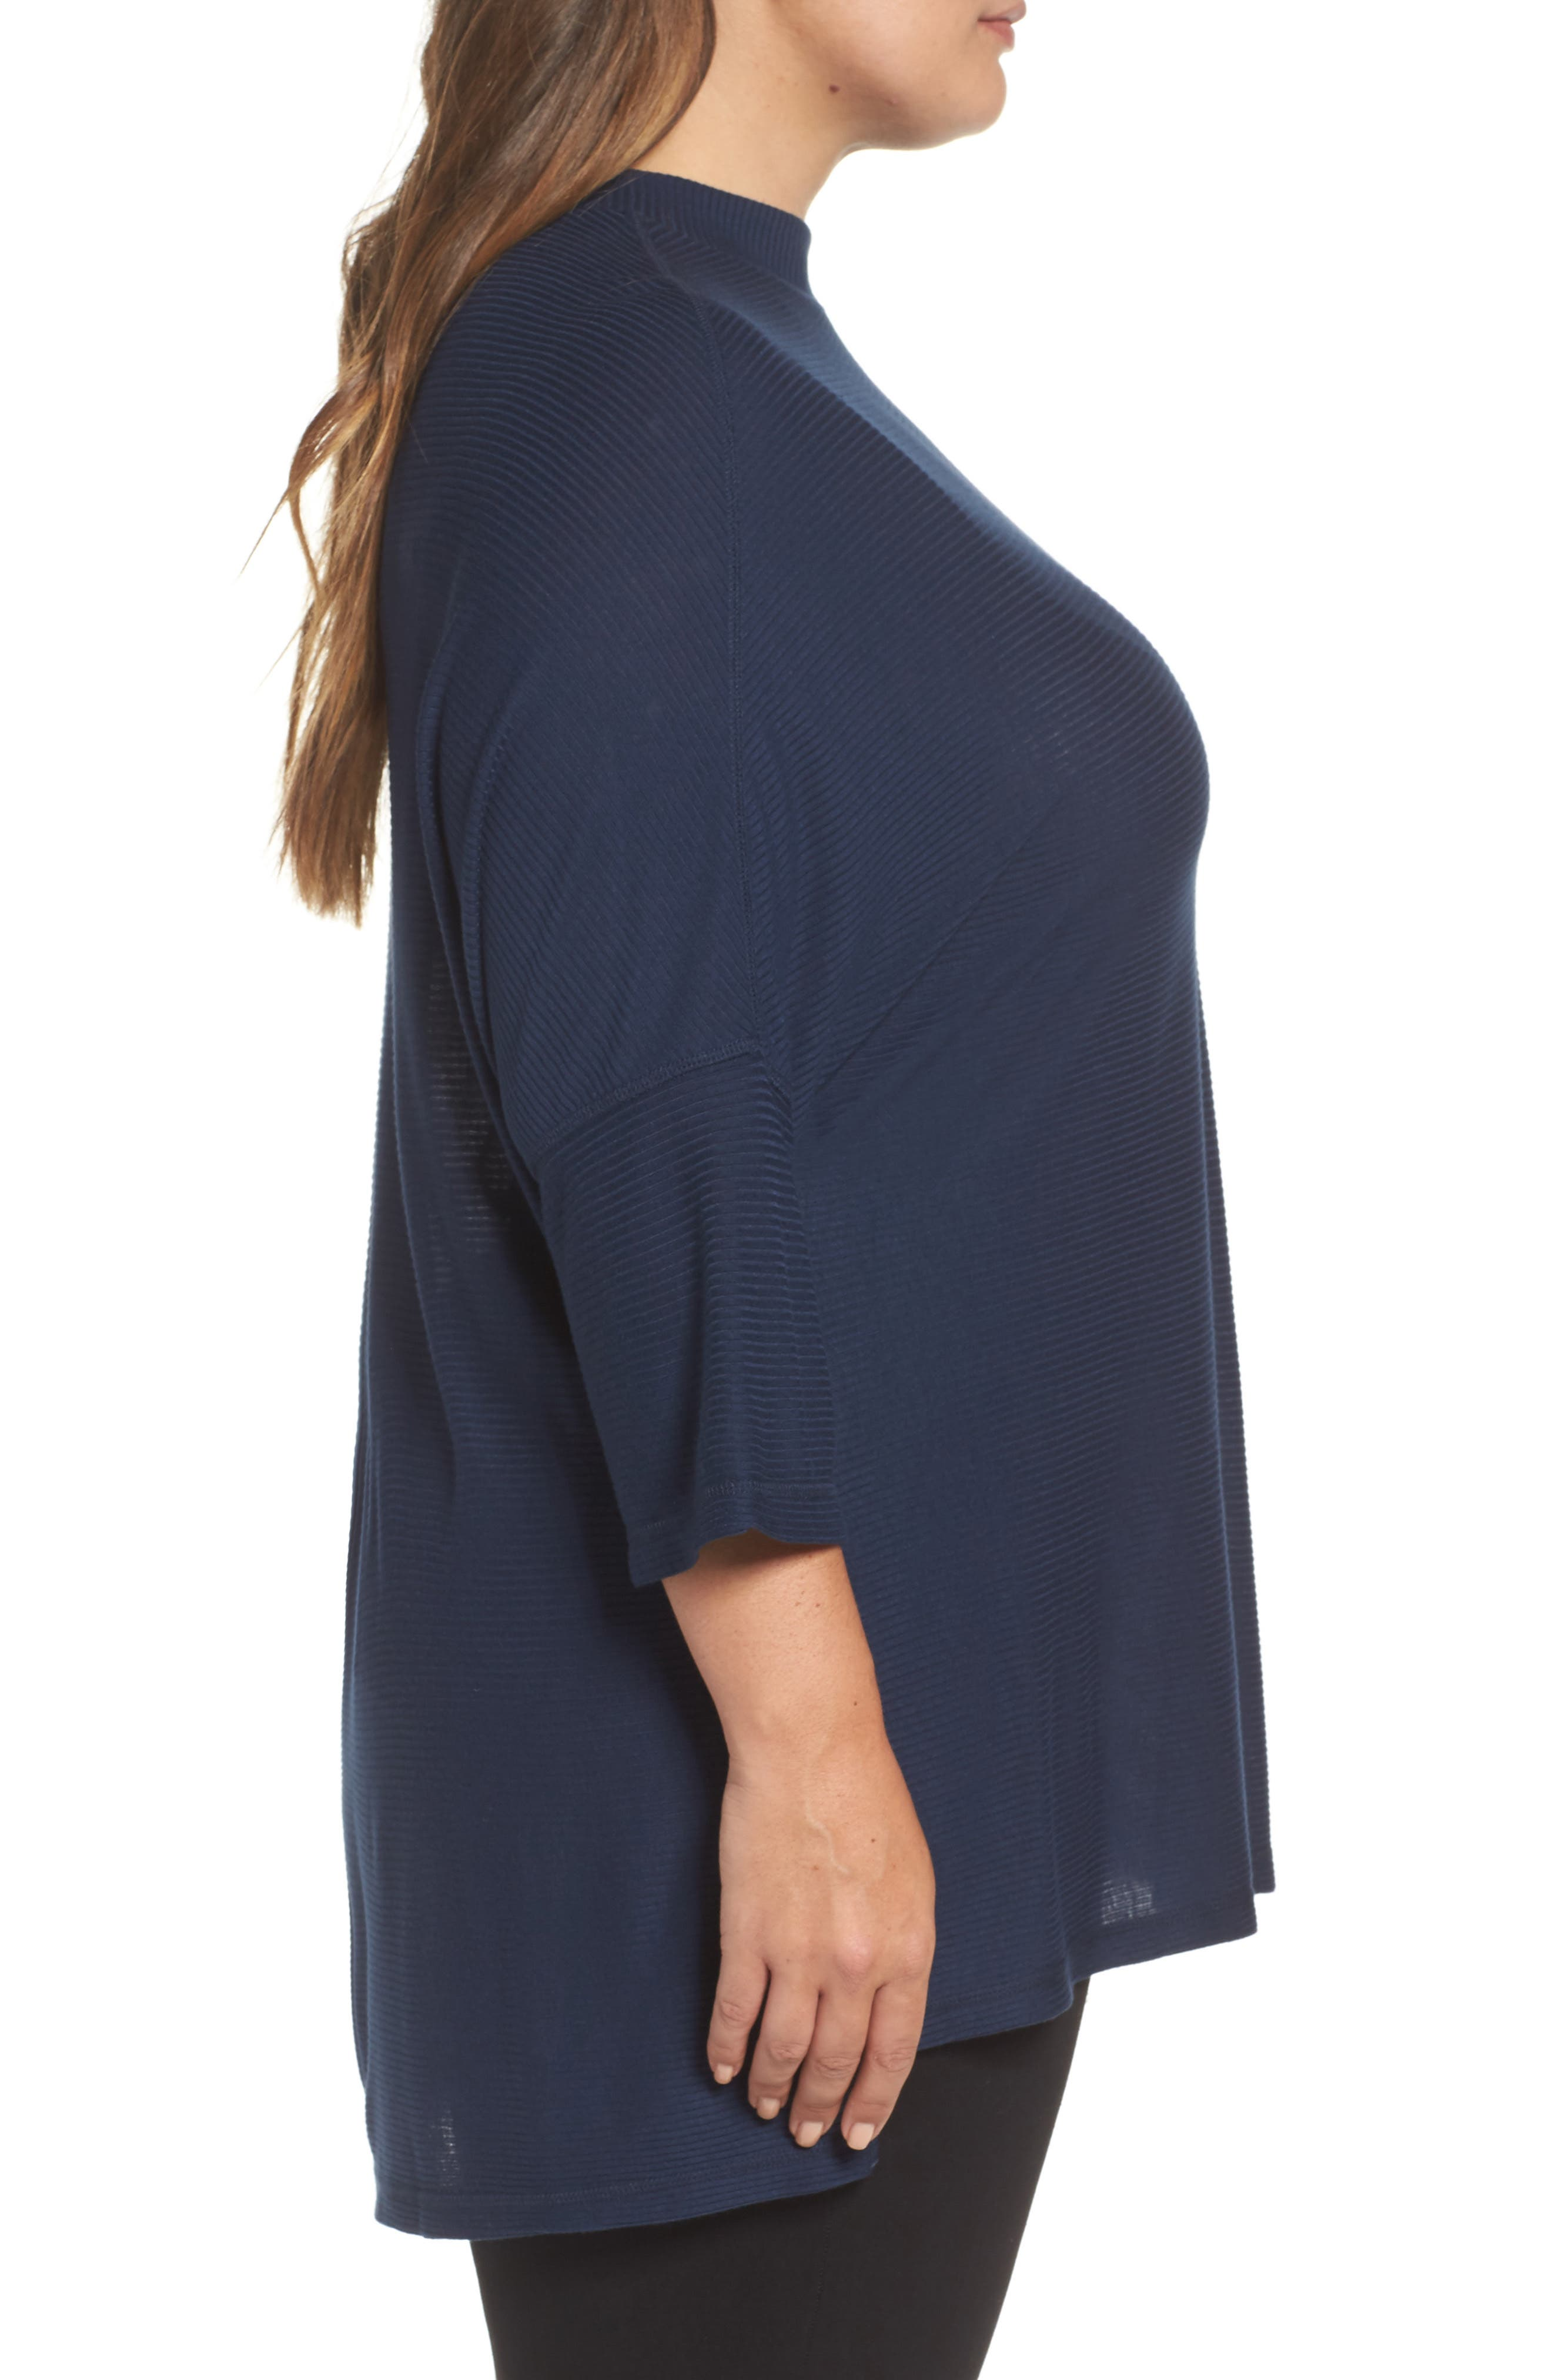 Alternate Image 3  - Melissa McCarthy Seven7 Mock Neck Rib Knit Top (Plus Size)